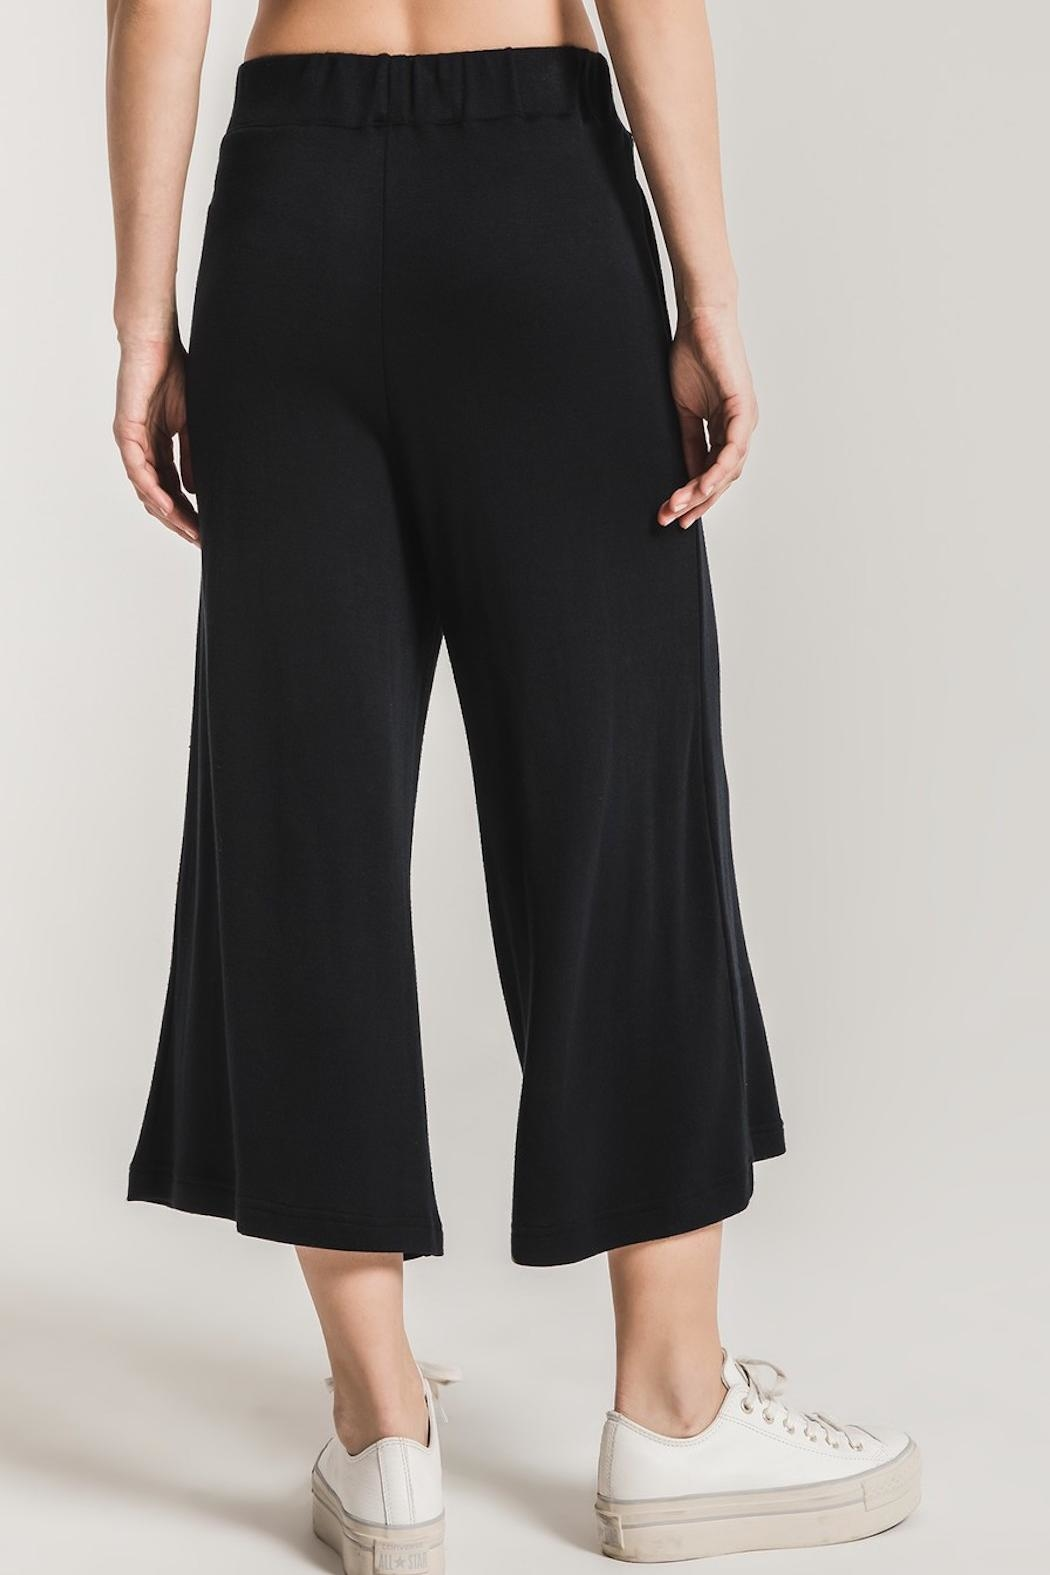 z supply Soft Knit Culottes - Back Cropped Image